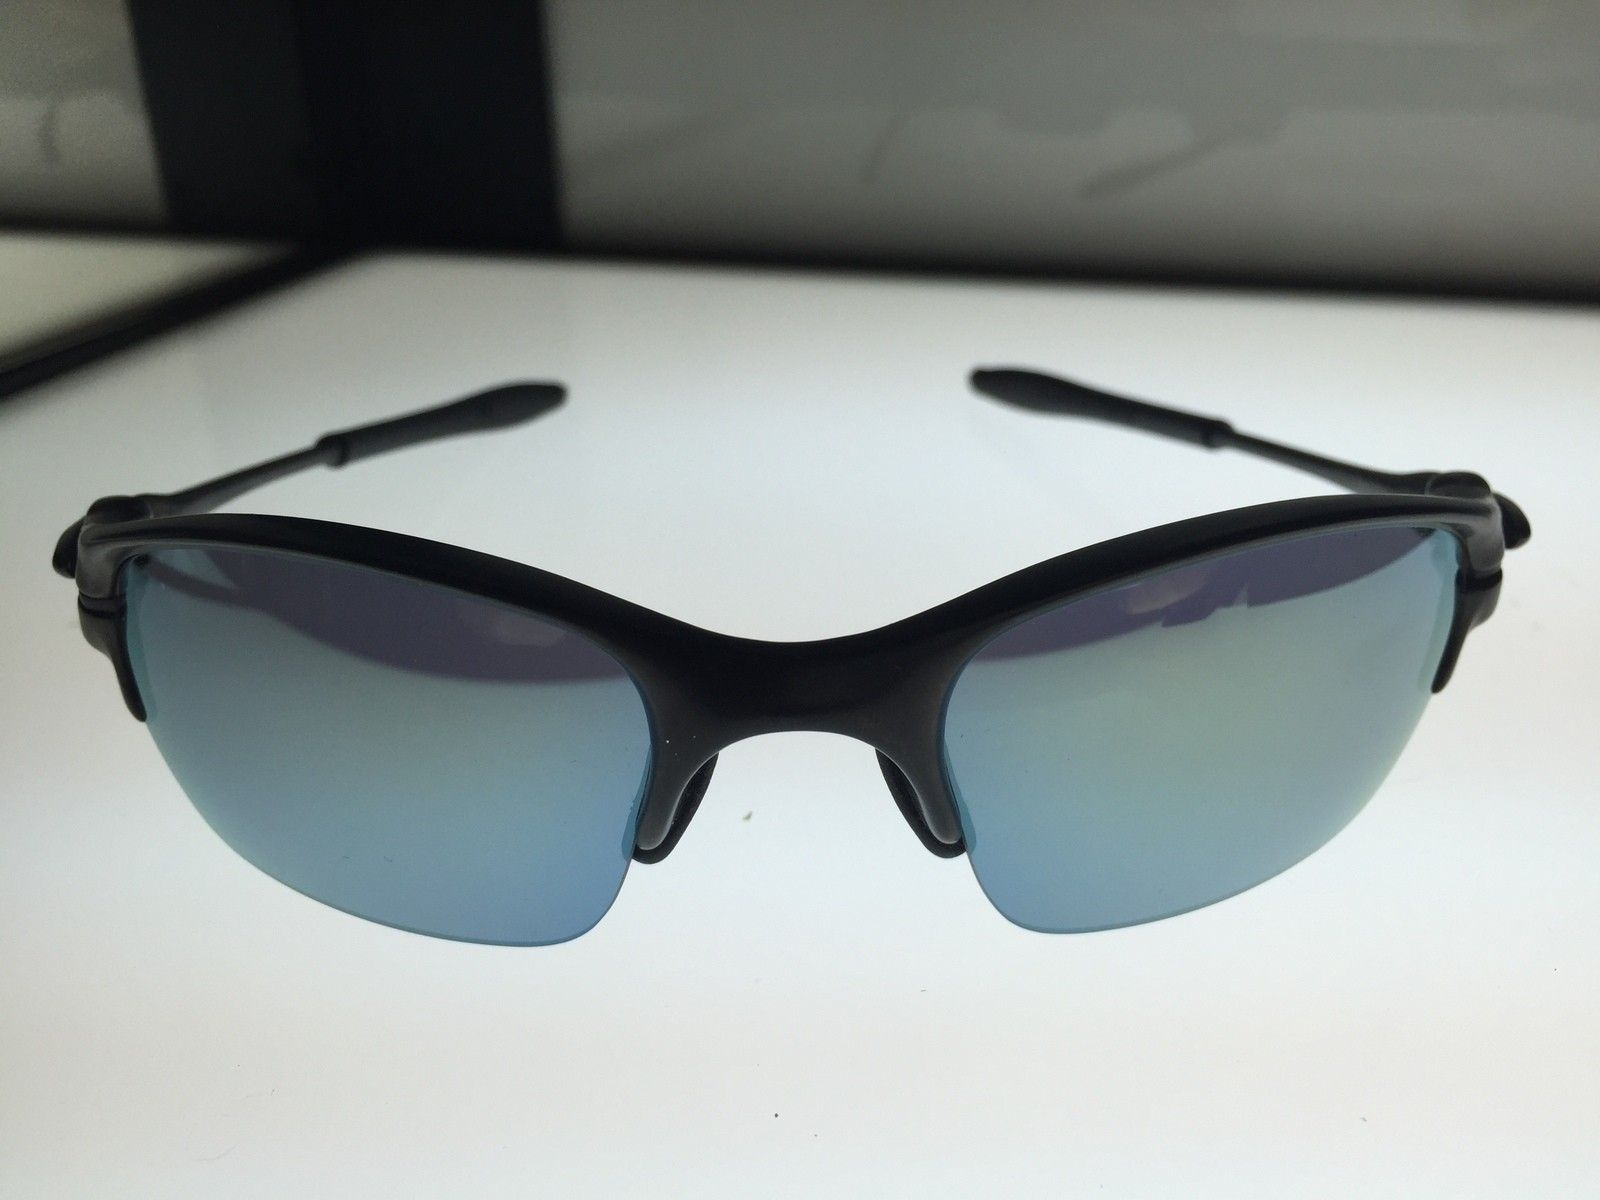 HalfX Carbon with New Gold Iridium Lenses * SOLD * - image.jpeg